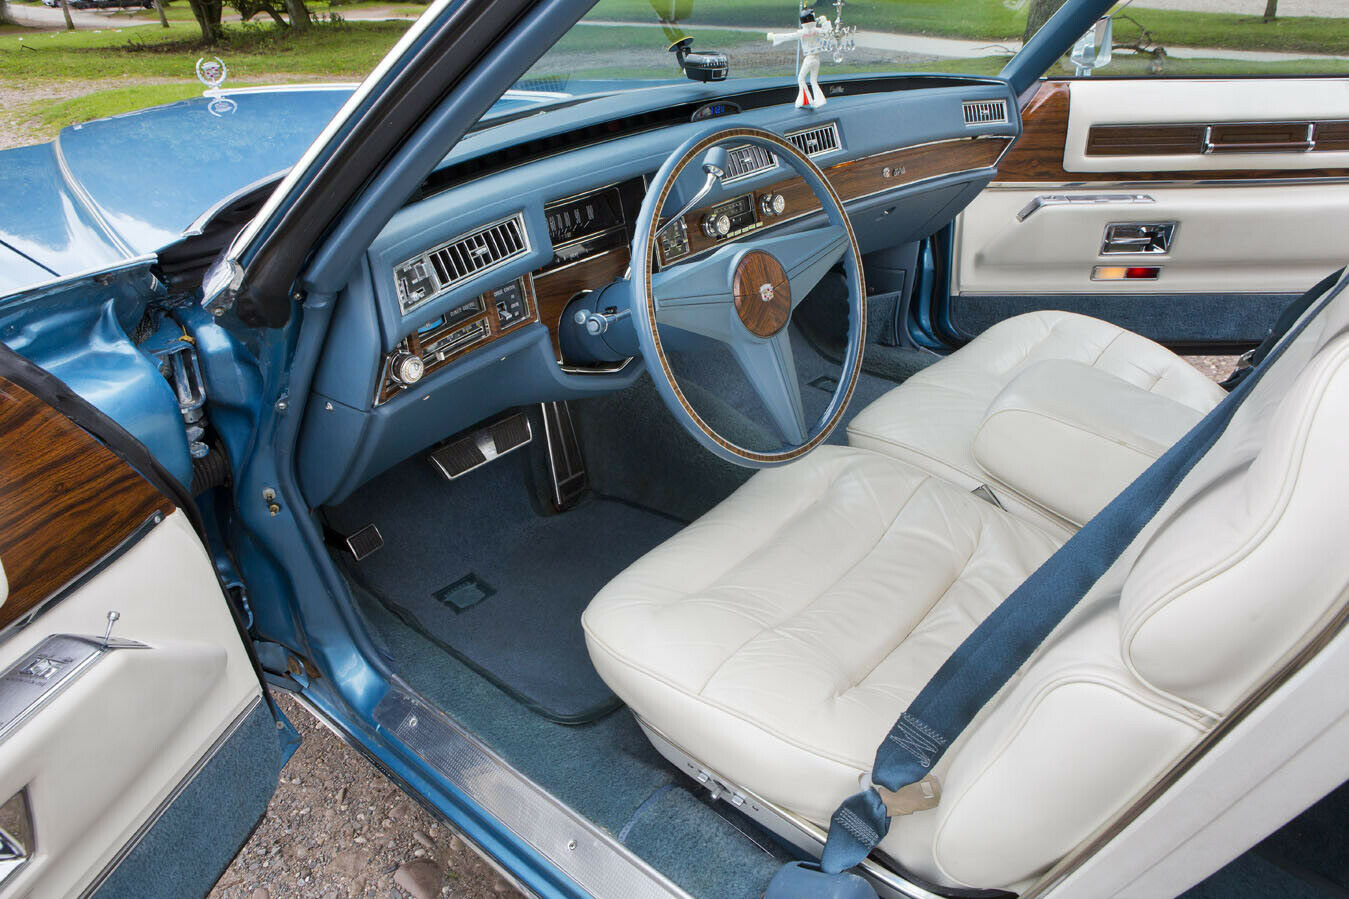 1976 Coupe variant Perfect condition throughout! For Sale (picture 3 of 6)